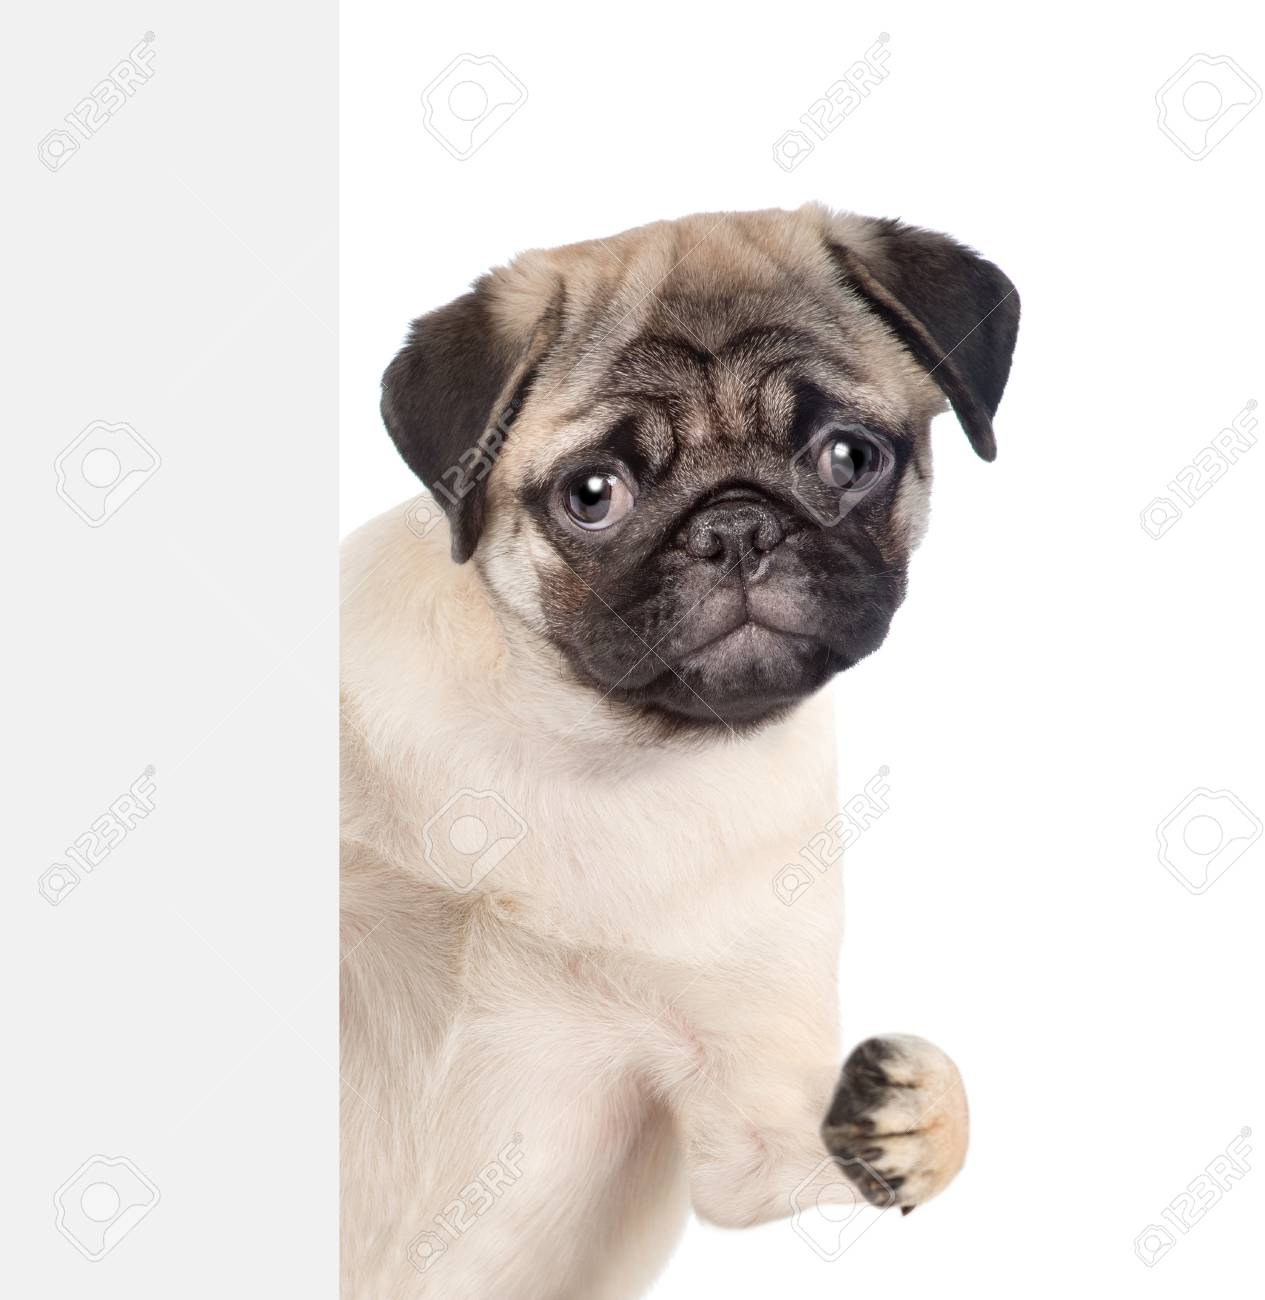 Funny Pug Puppy Above White Banner Isolated On White Background Stock Photo Picture And Royalty Free Image Image 95646483